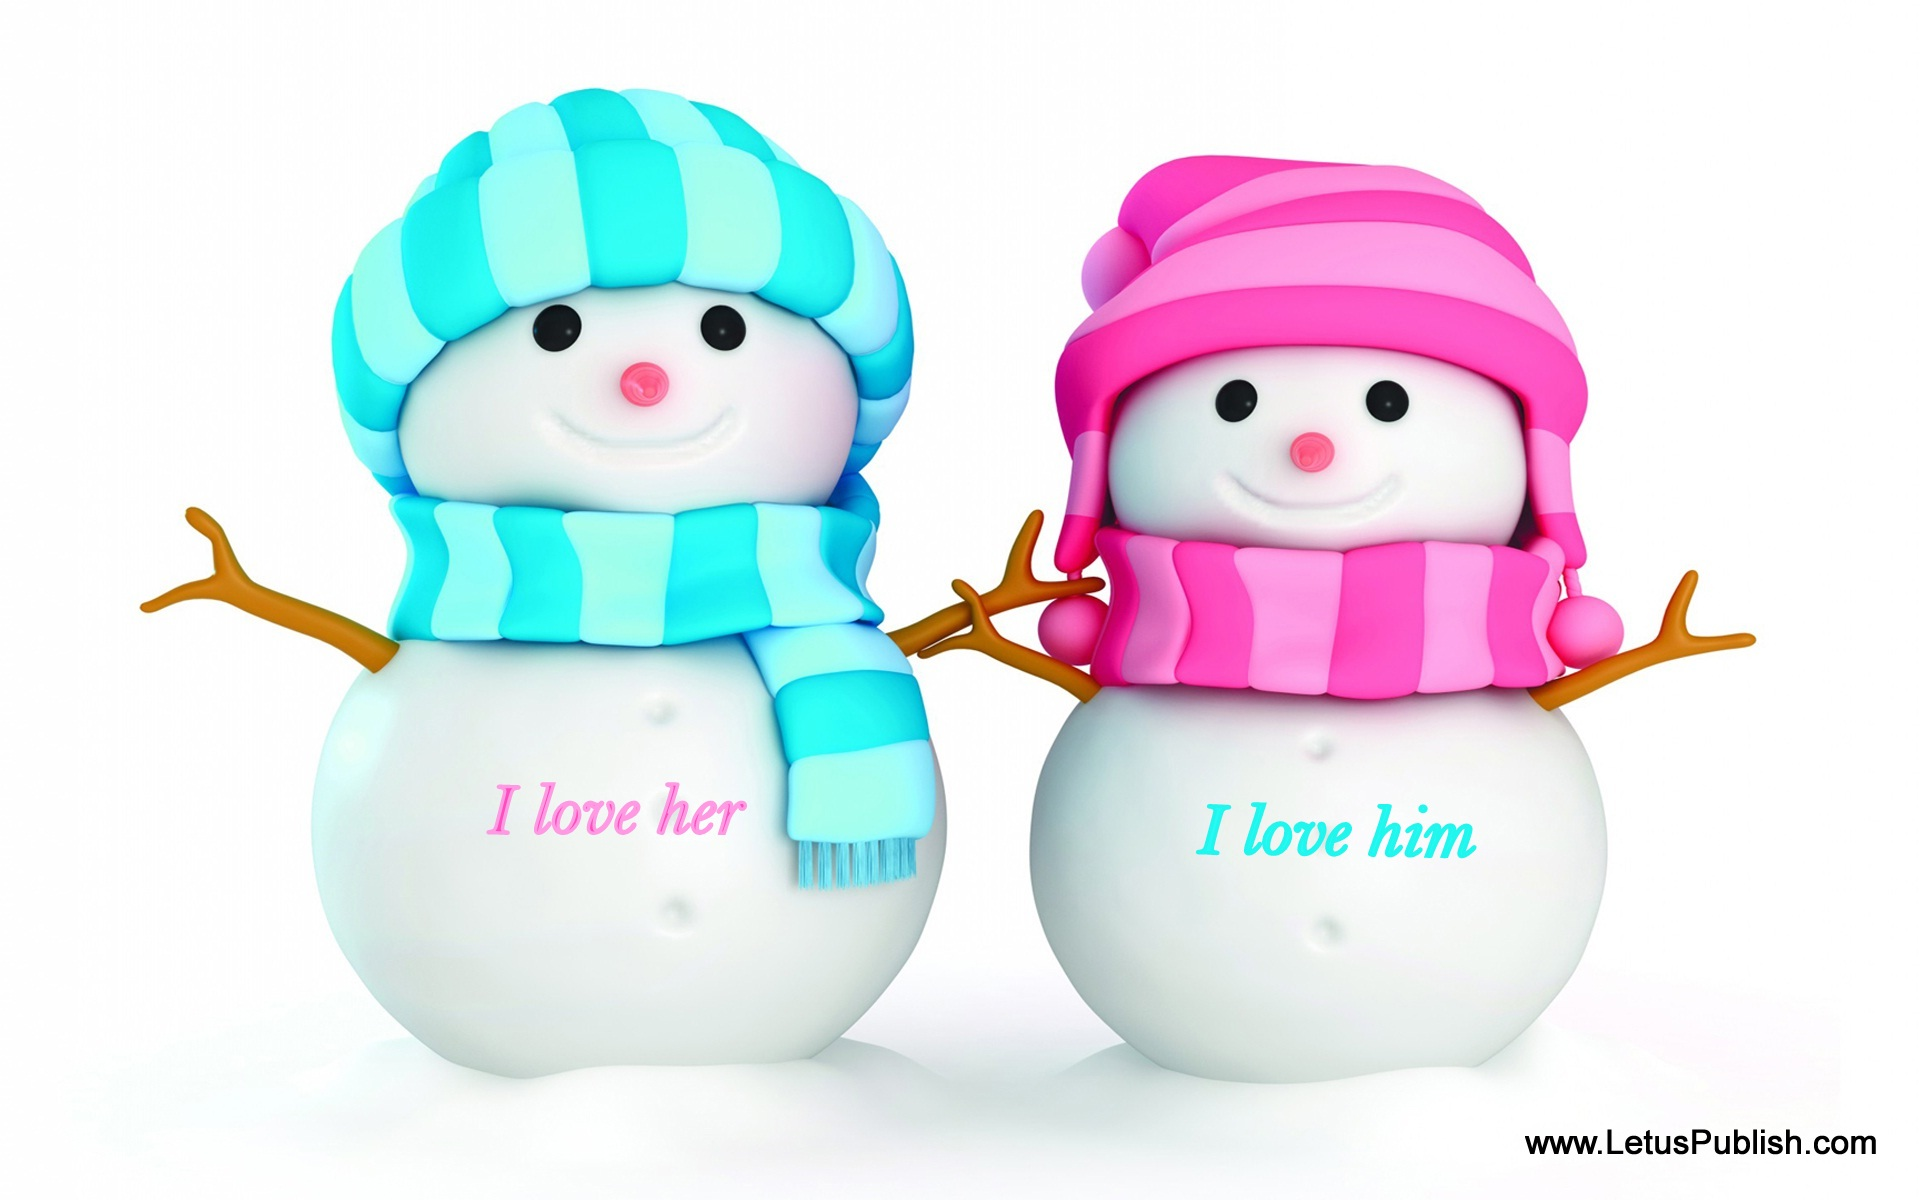 Cute romantic snowy couples love images